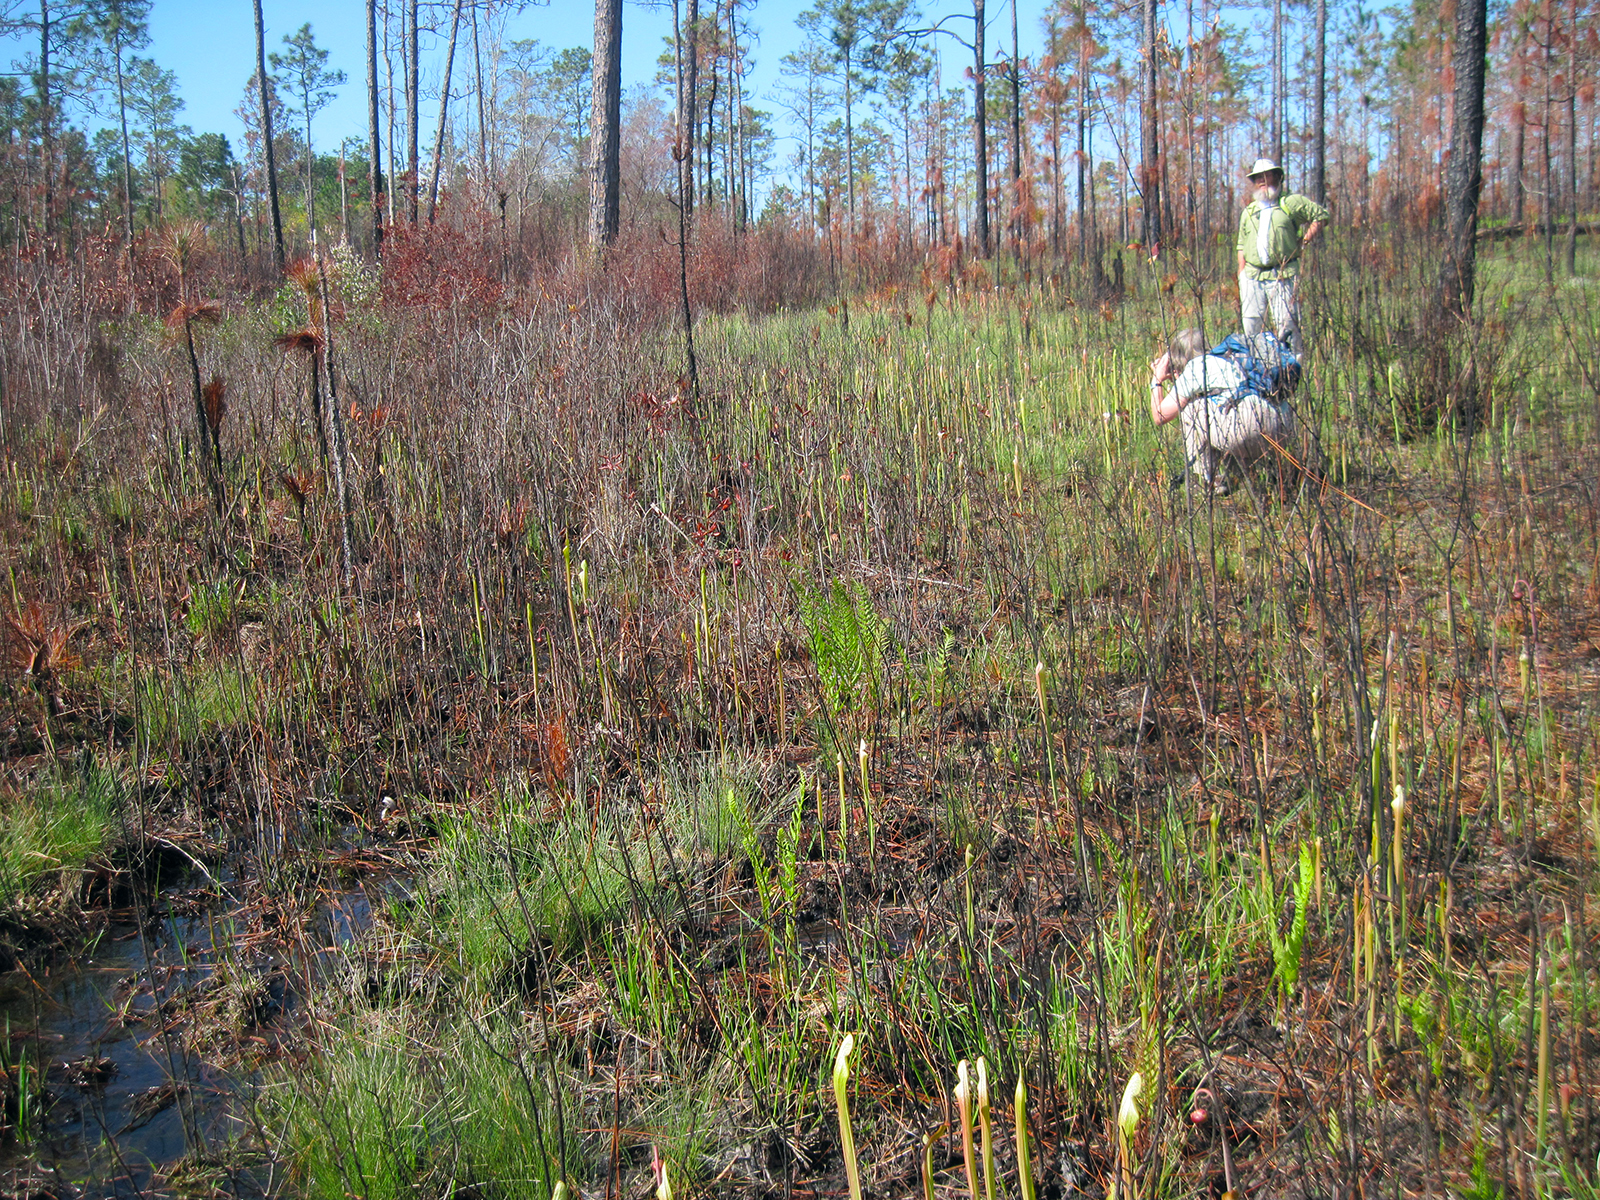 Taking pictures of pitcher plants at Hutton